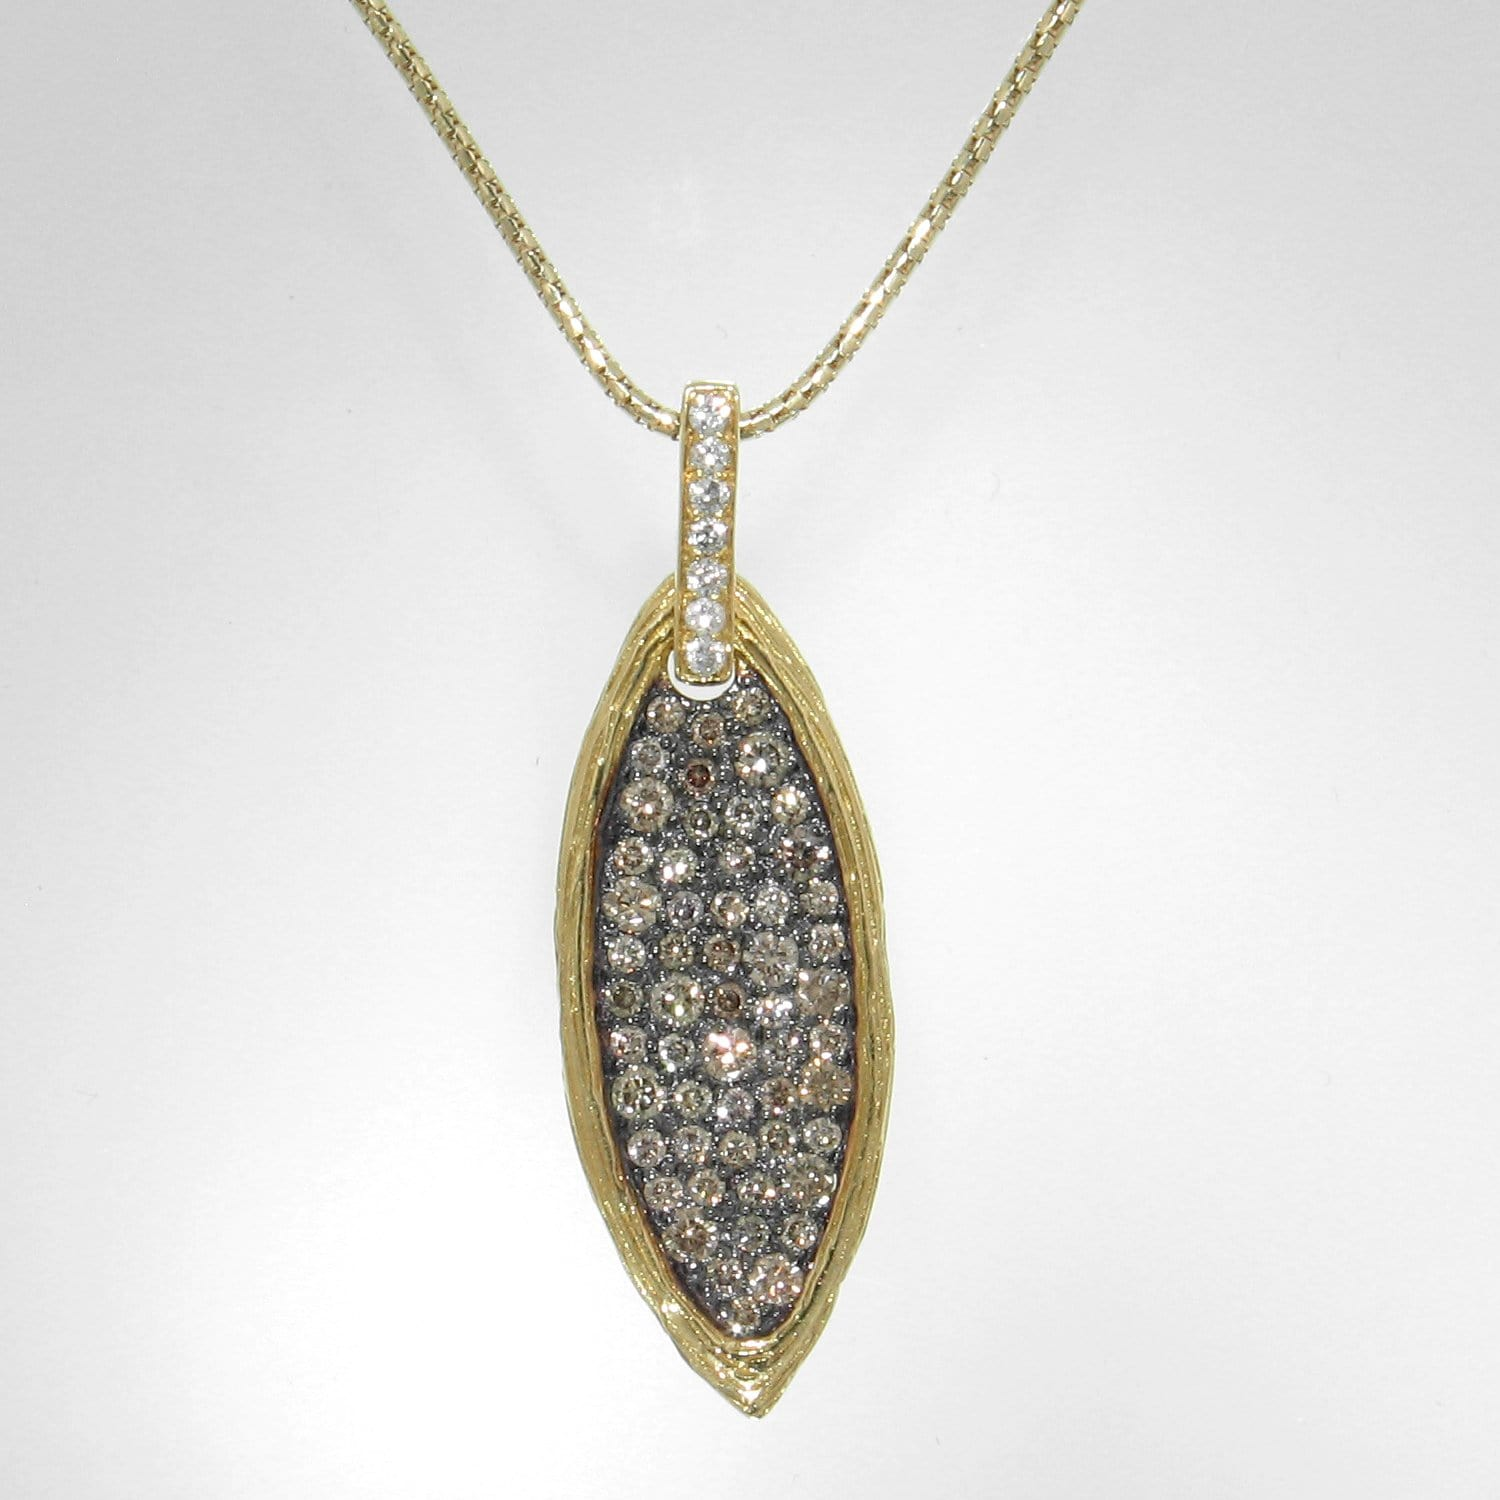 18k Yellow Gold & Brown Diamond Pendant - 297NC-YG-br-Jayne New York-Renee Taylor Gallery